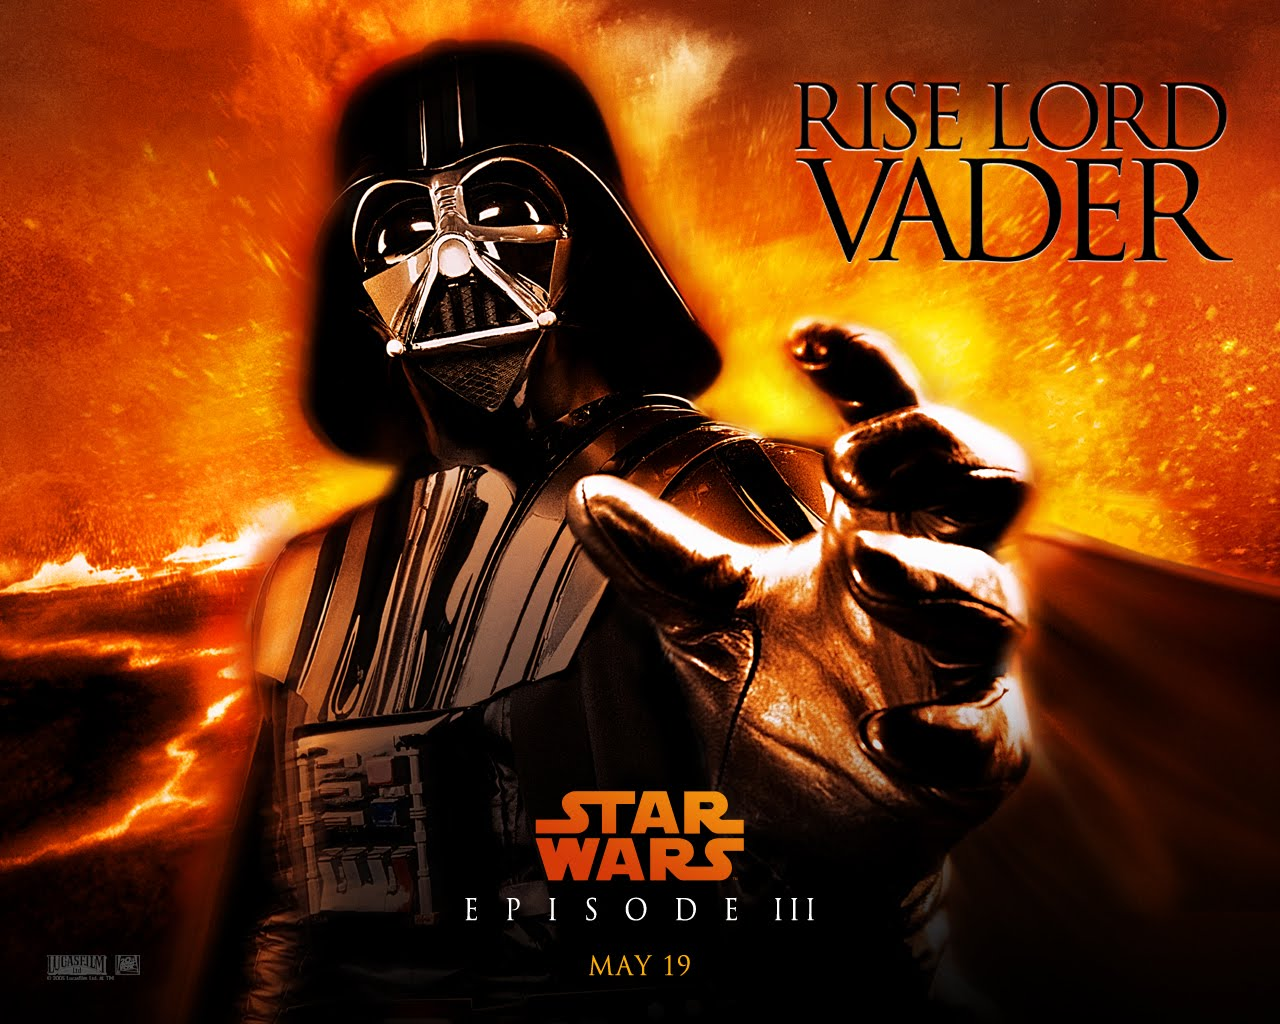 Star Wars WallpapersScreen Savers 1280x1024